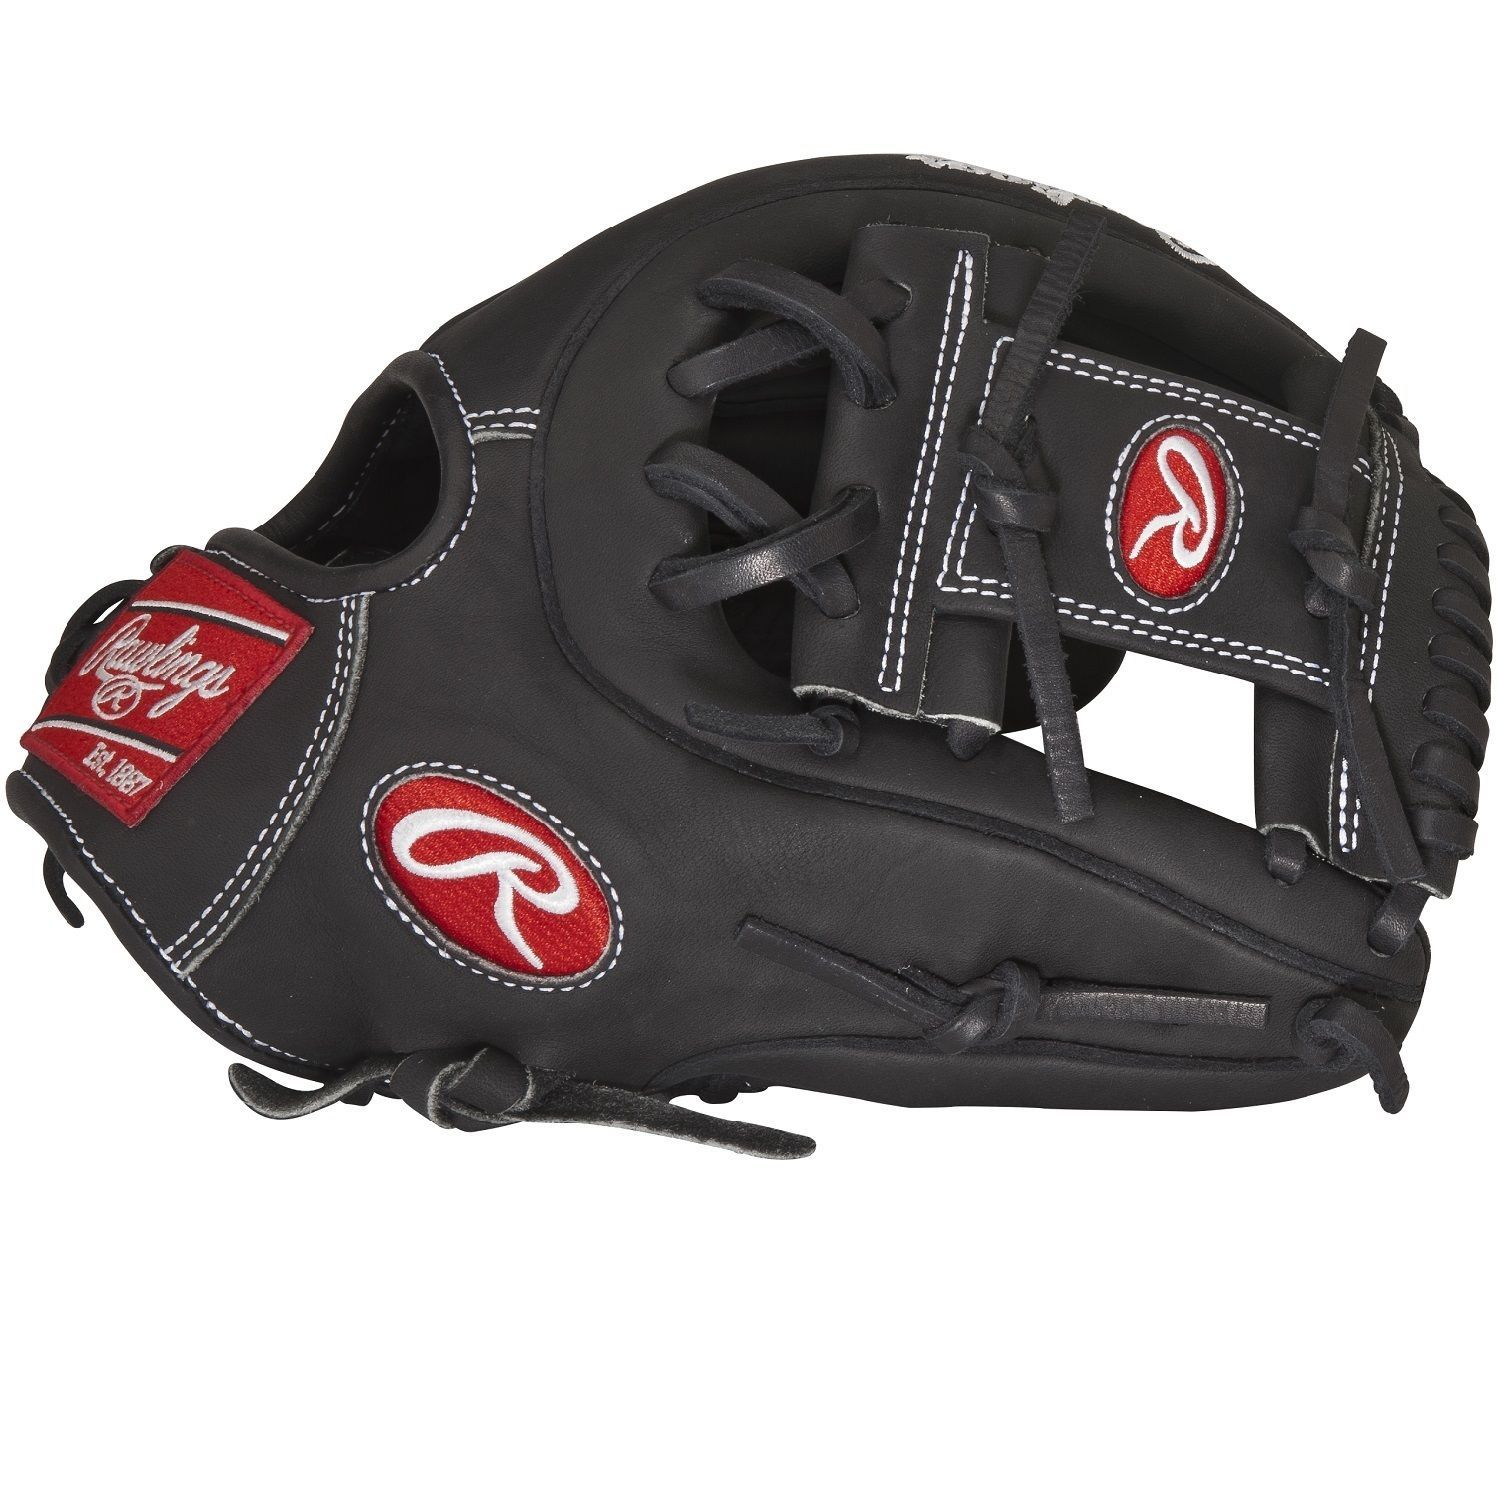 Overstock Com Online Shopping Bedding Furniture Electronics Jewelry Clothing More Softball Gloves Fastpitch Softball Gloves Baseball Glove